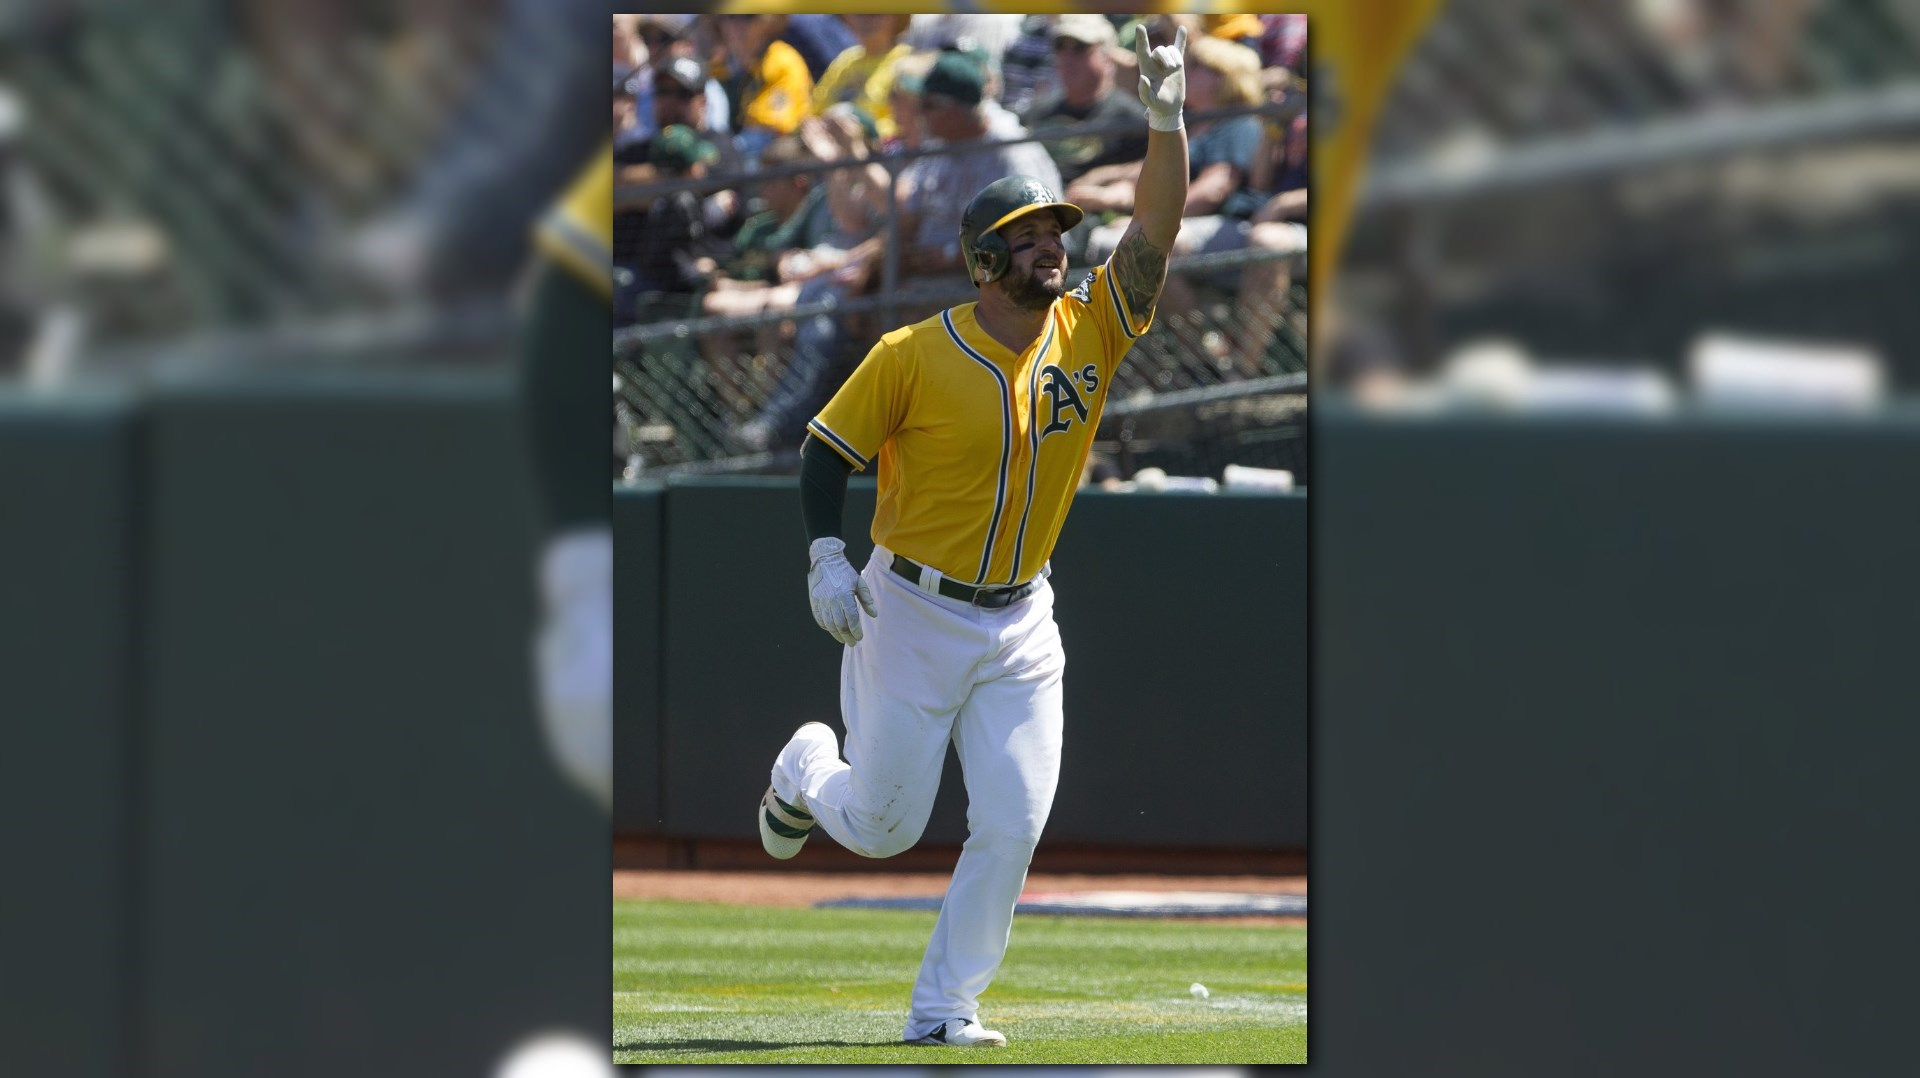 abc10.com | A's get to K-Rod in 9th inning again, rally ...